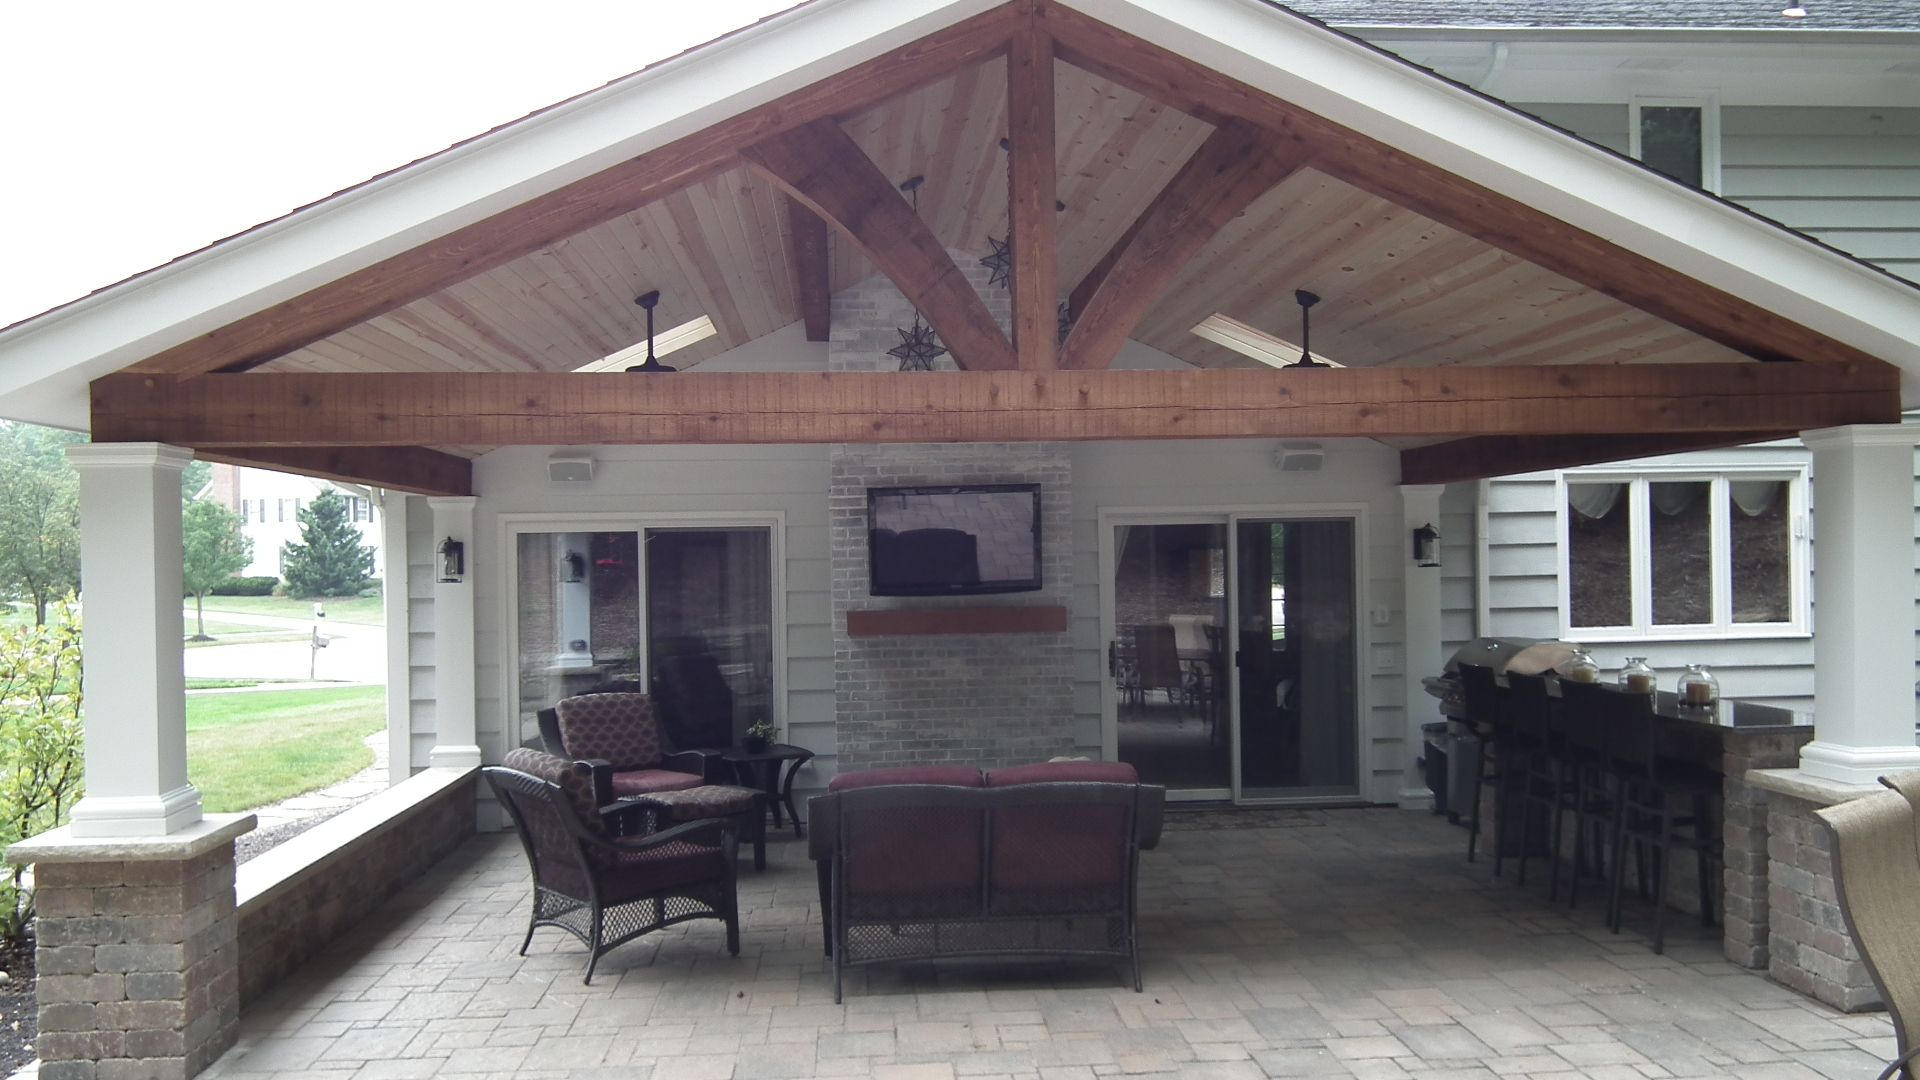 Best Covered Patio Full View Wood Beams Patio Design 400 x 300